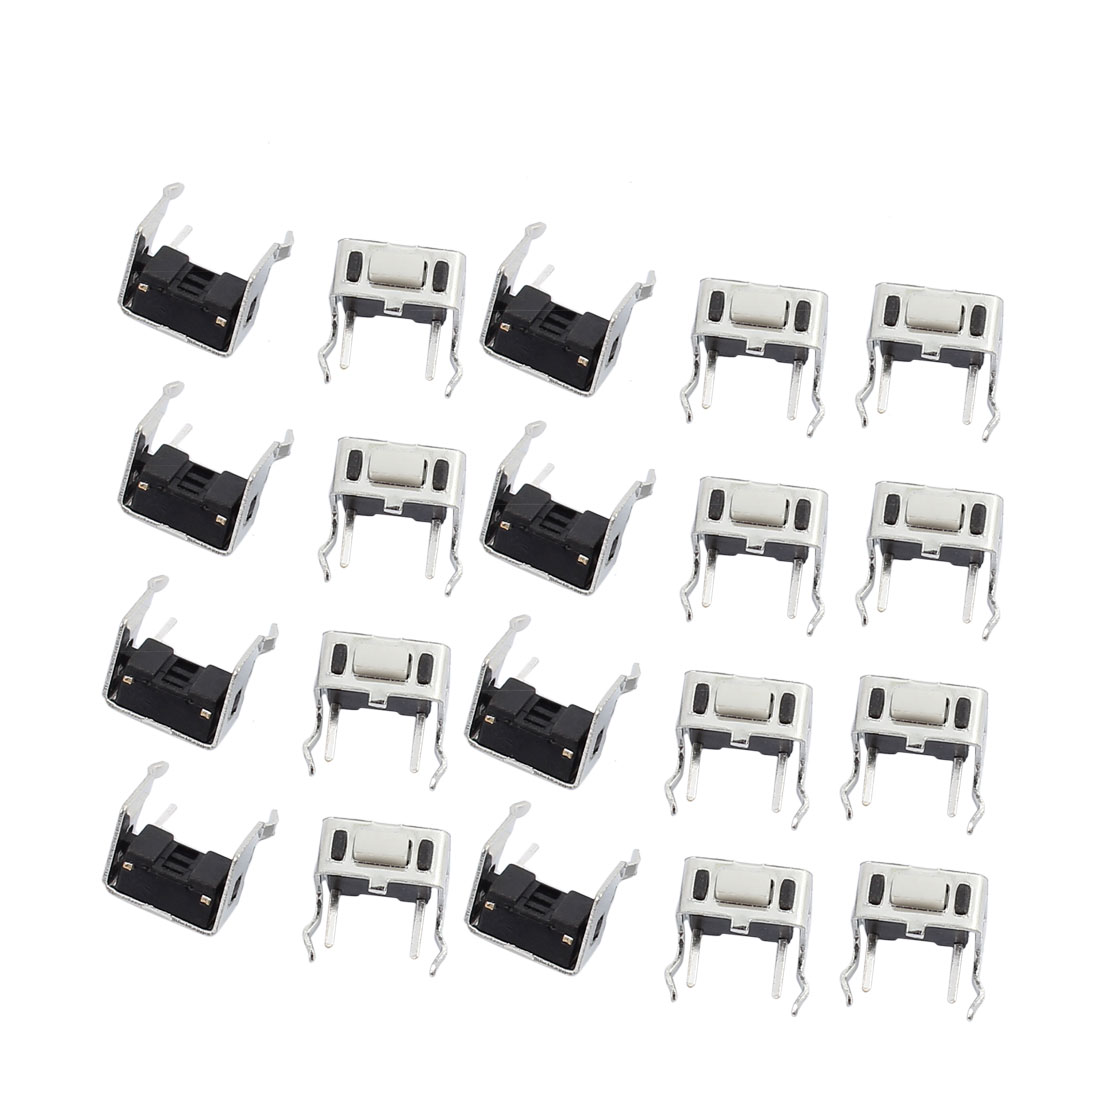 20Pcs 3mmx6mmx5mm Panel PCB Momentary Tactile Tact Push Button Switch 4Terminals